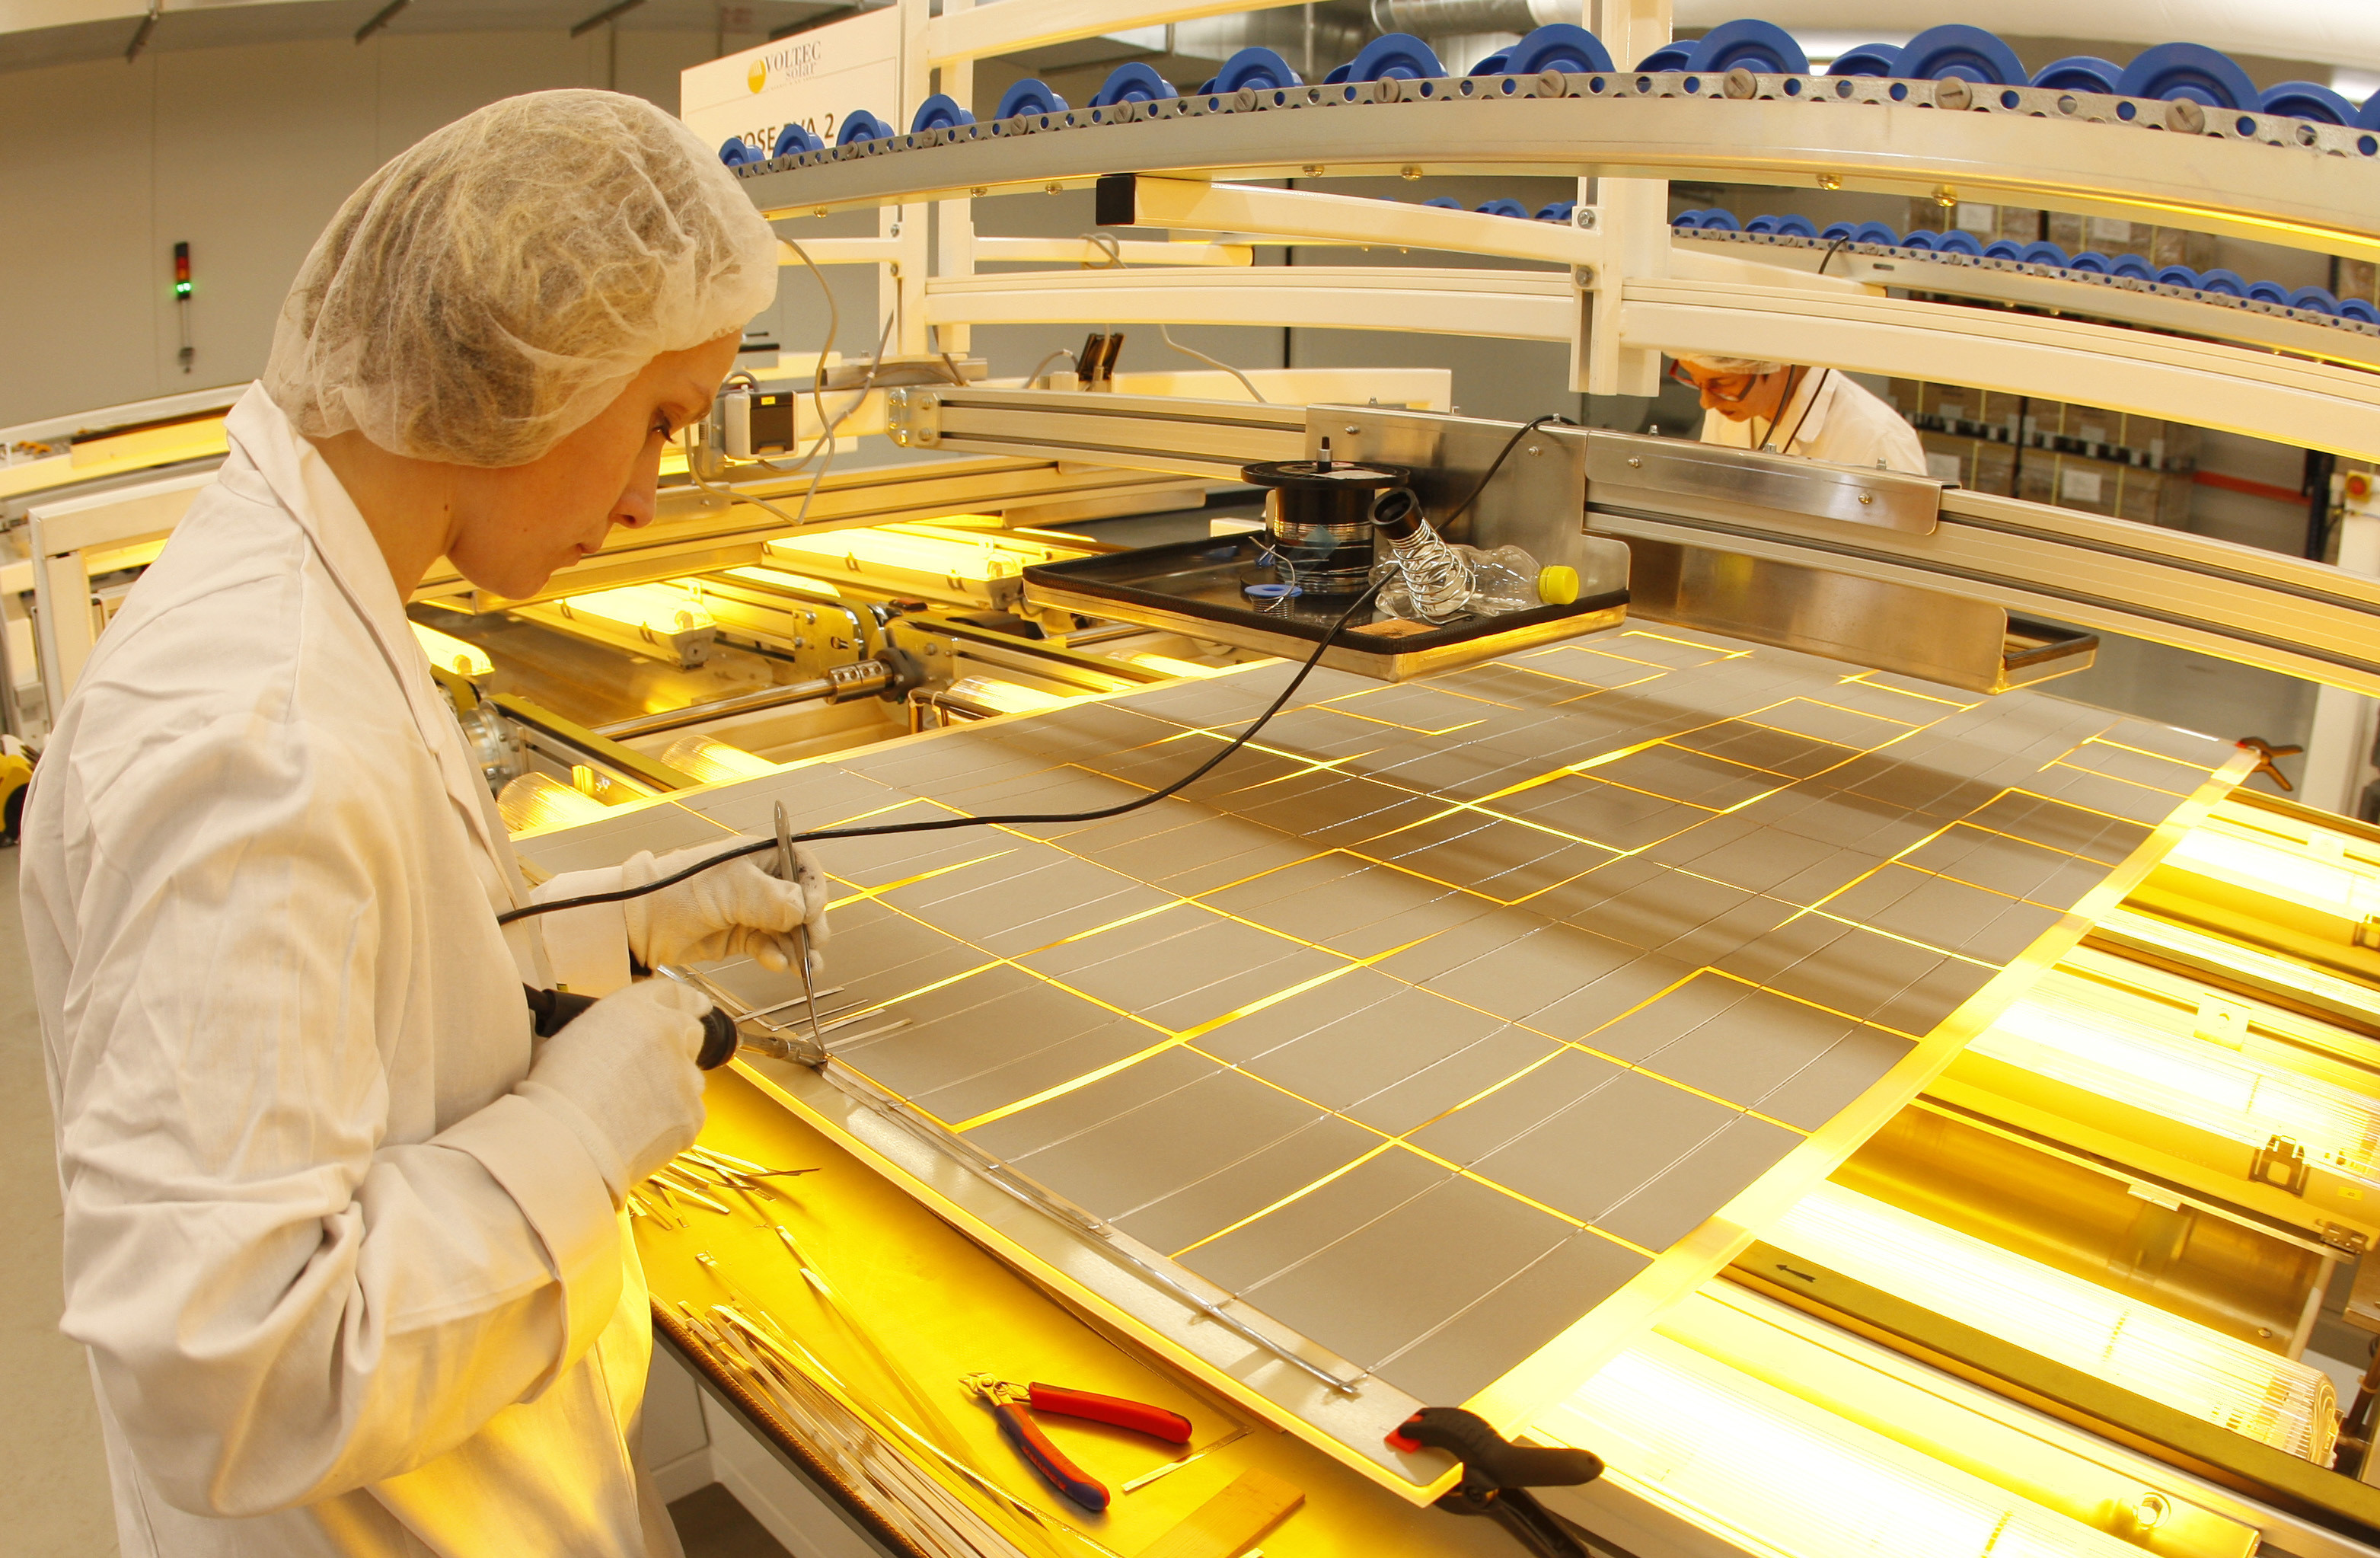 Employees work at the assembly line of photovoltaic panels at the Voltec Solar factory in Dinsheim sur Bruche near Strasbourg, March 11, 2010.  REUTERS/Vincent Kessler   (FRANCE - Tags: BUSINESS ENERGY ENVIRONMENT) - PM1E63B15AI01